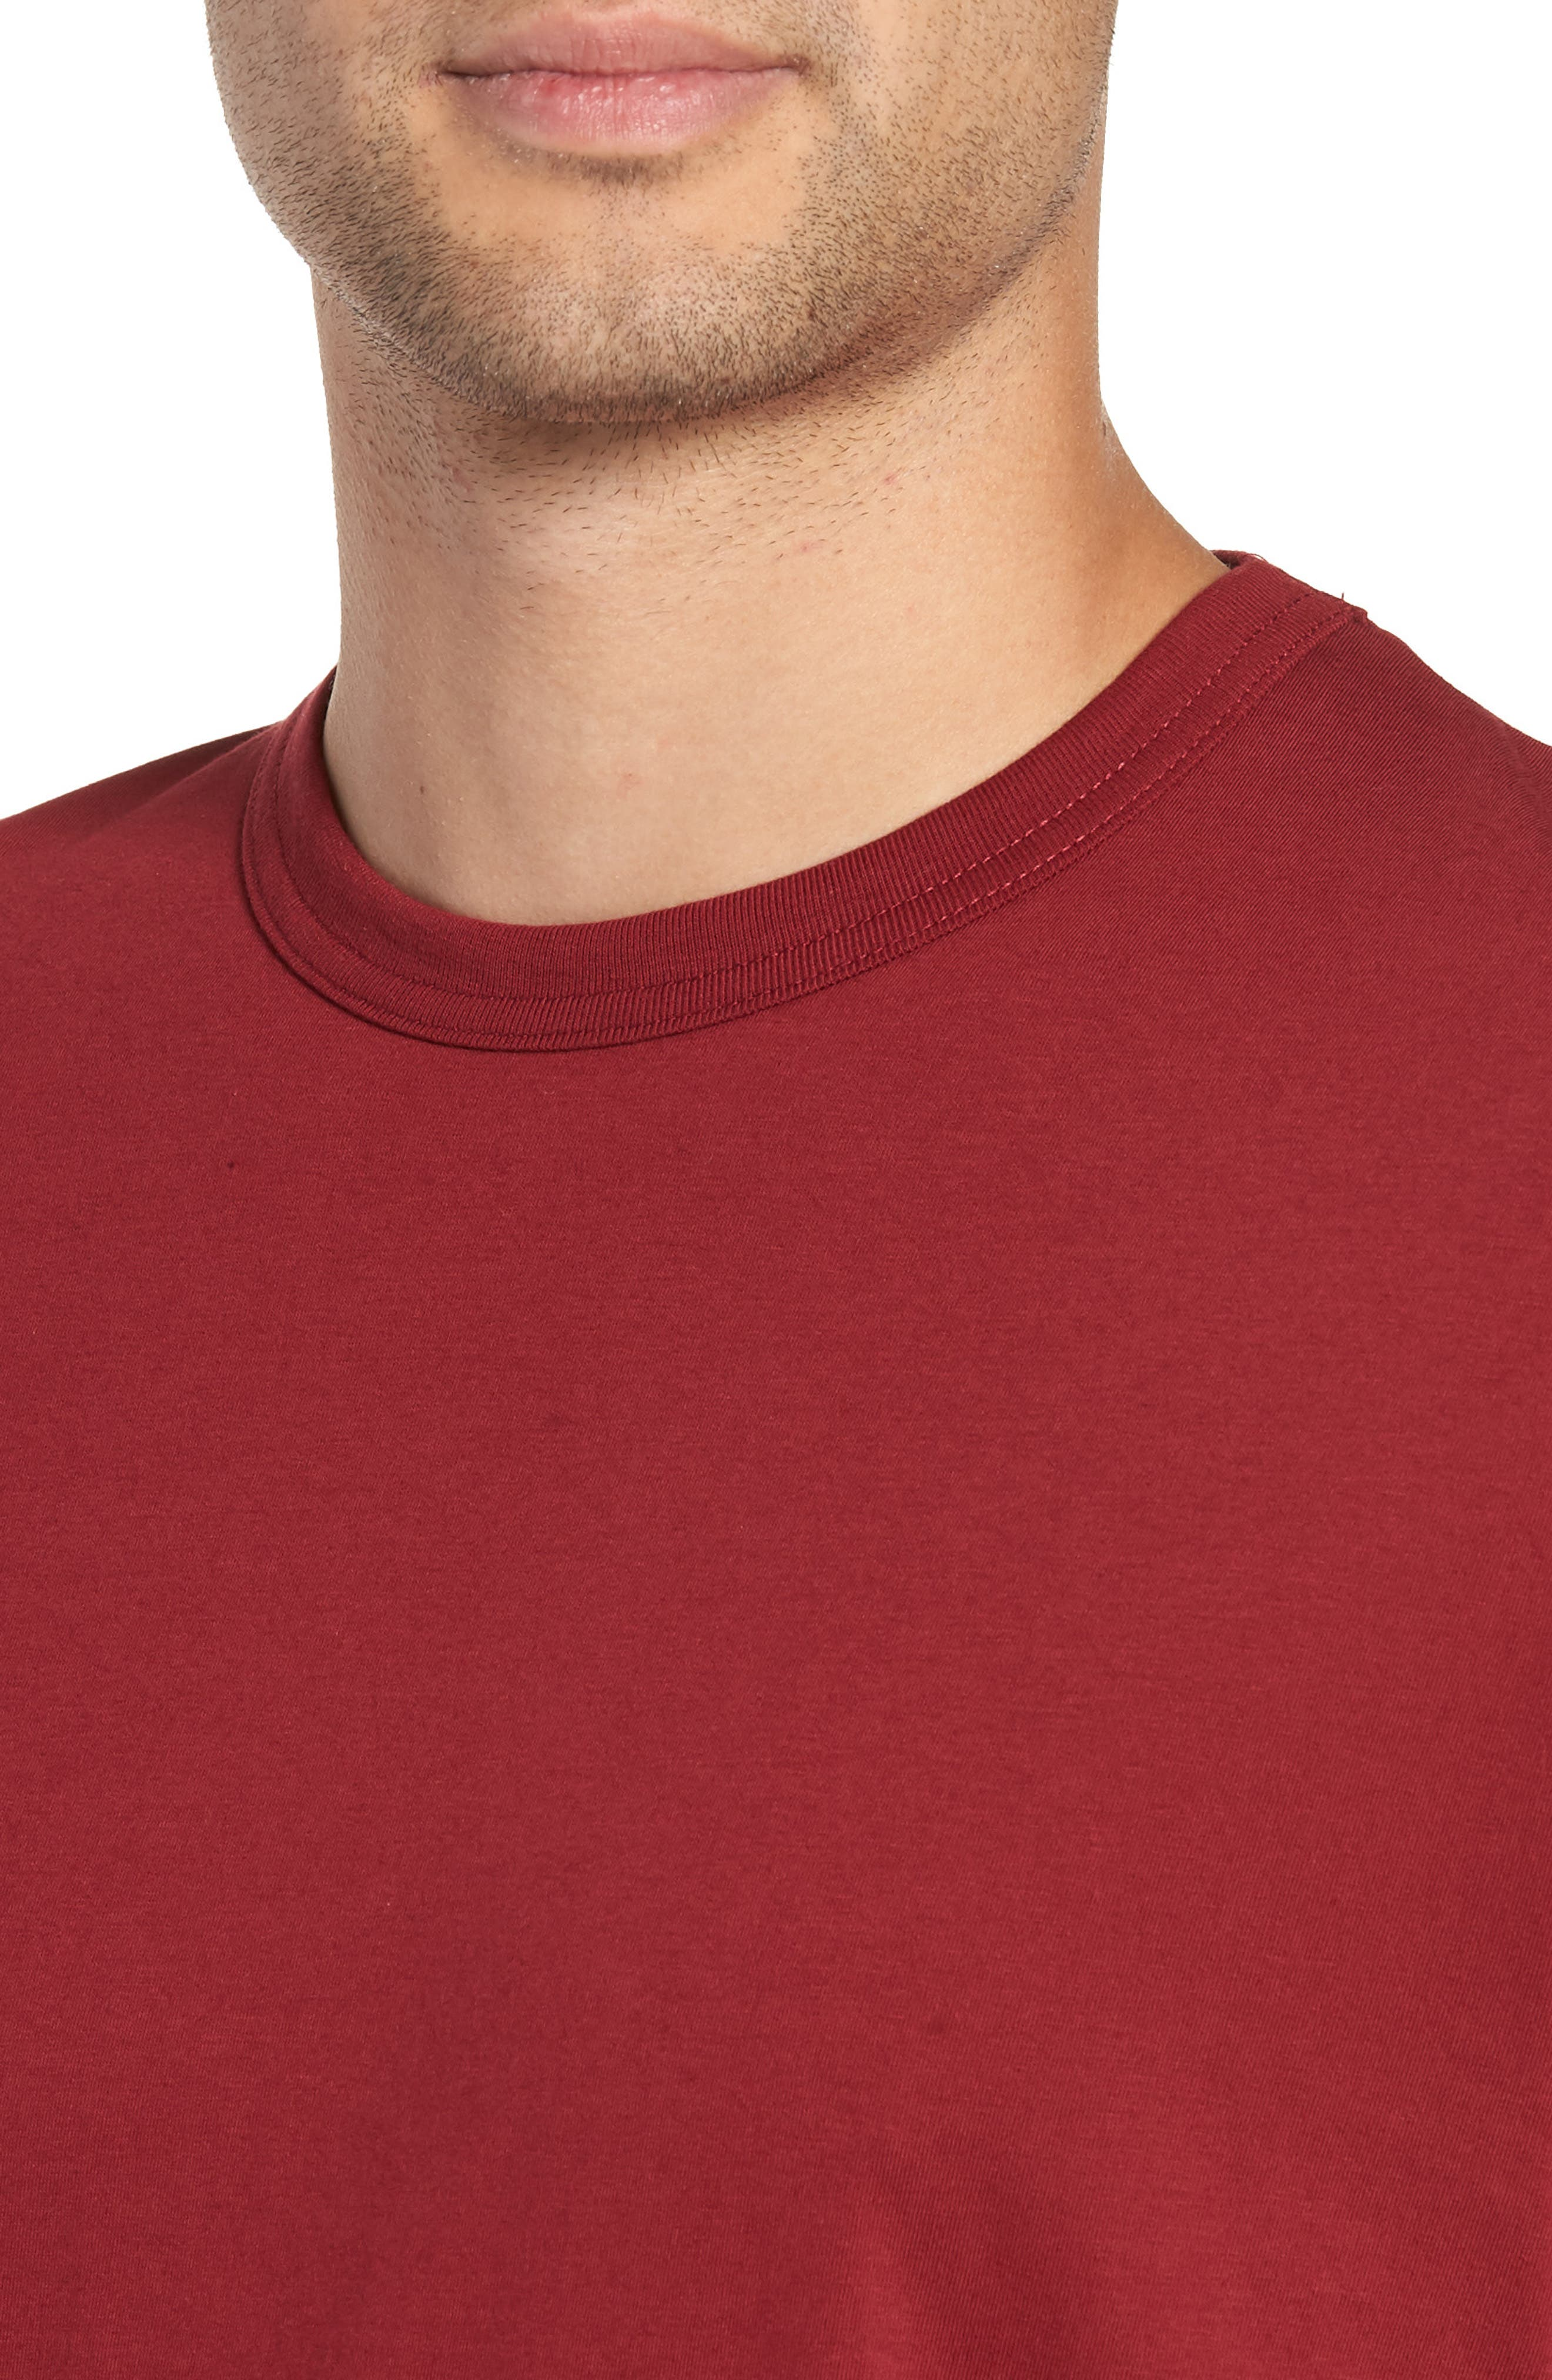 Bound Classic Crew T-Shirt,                             Alternate thumbnail 4, color,                             RED